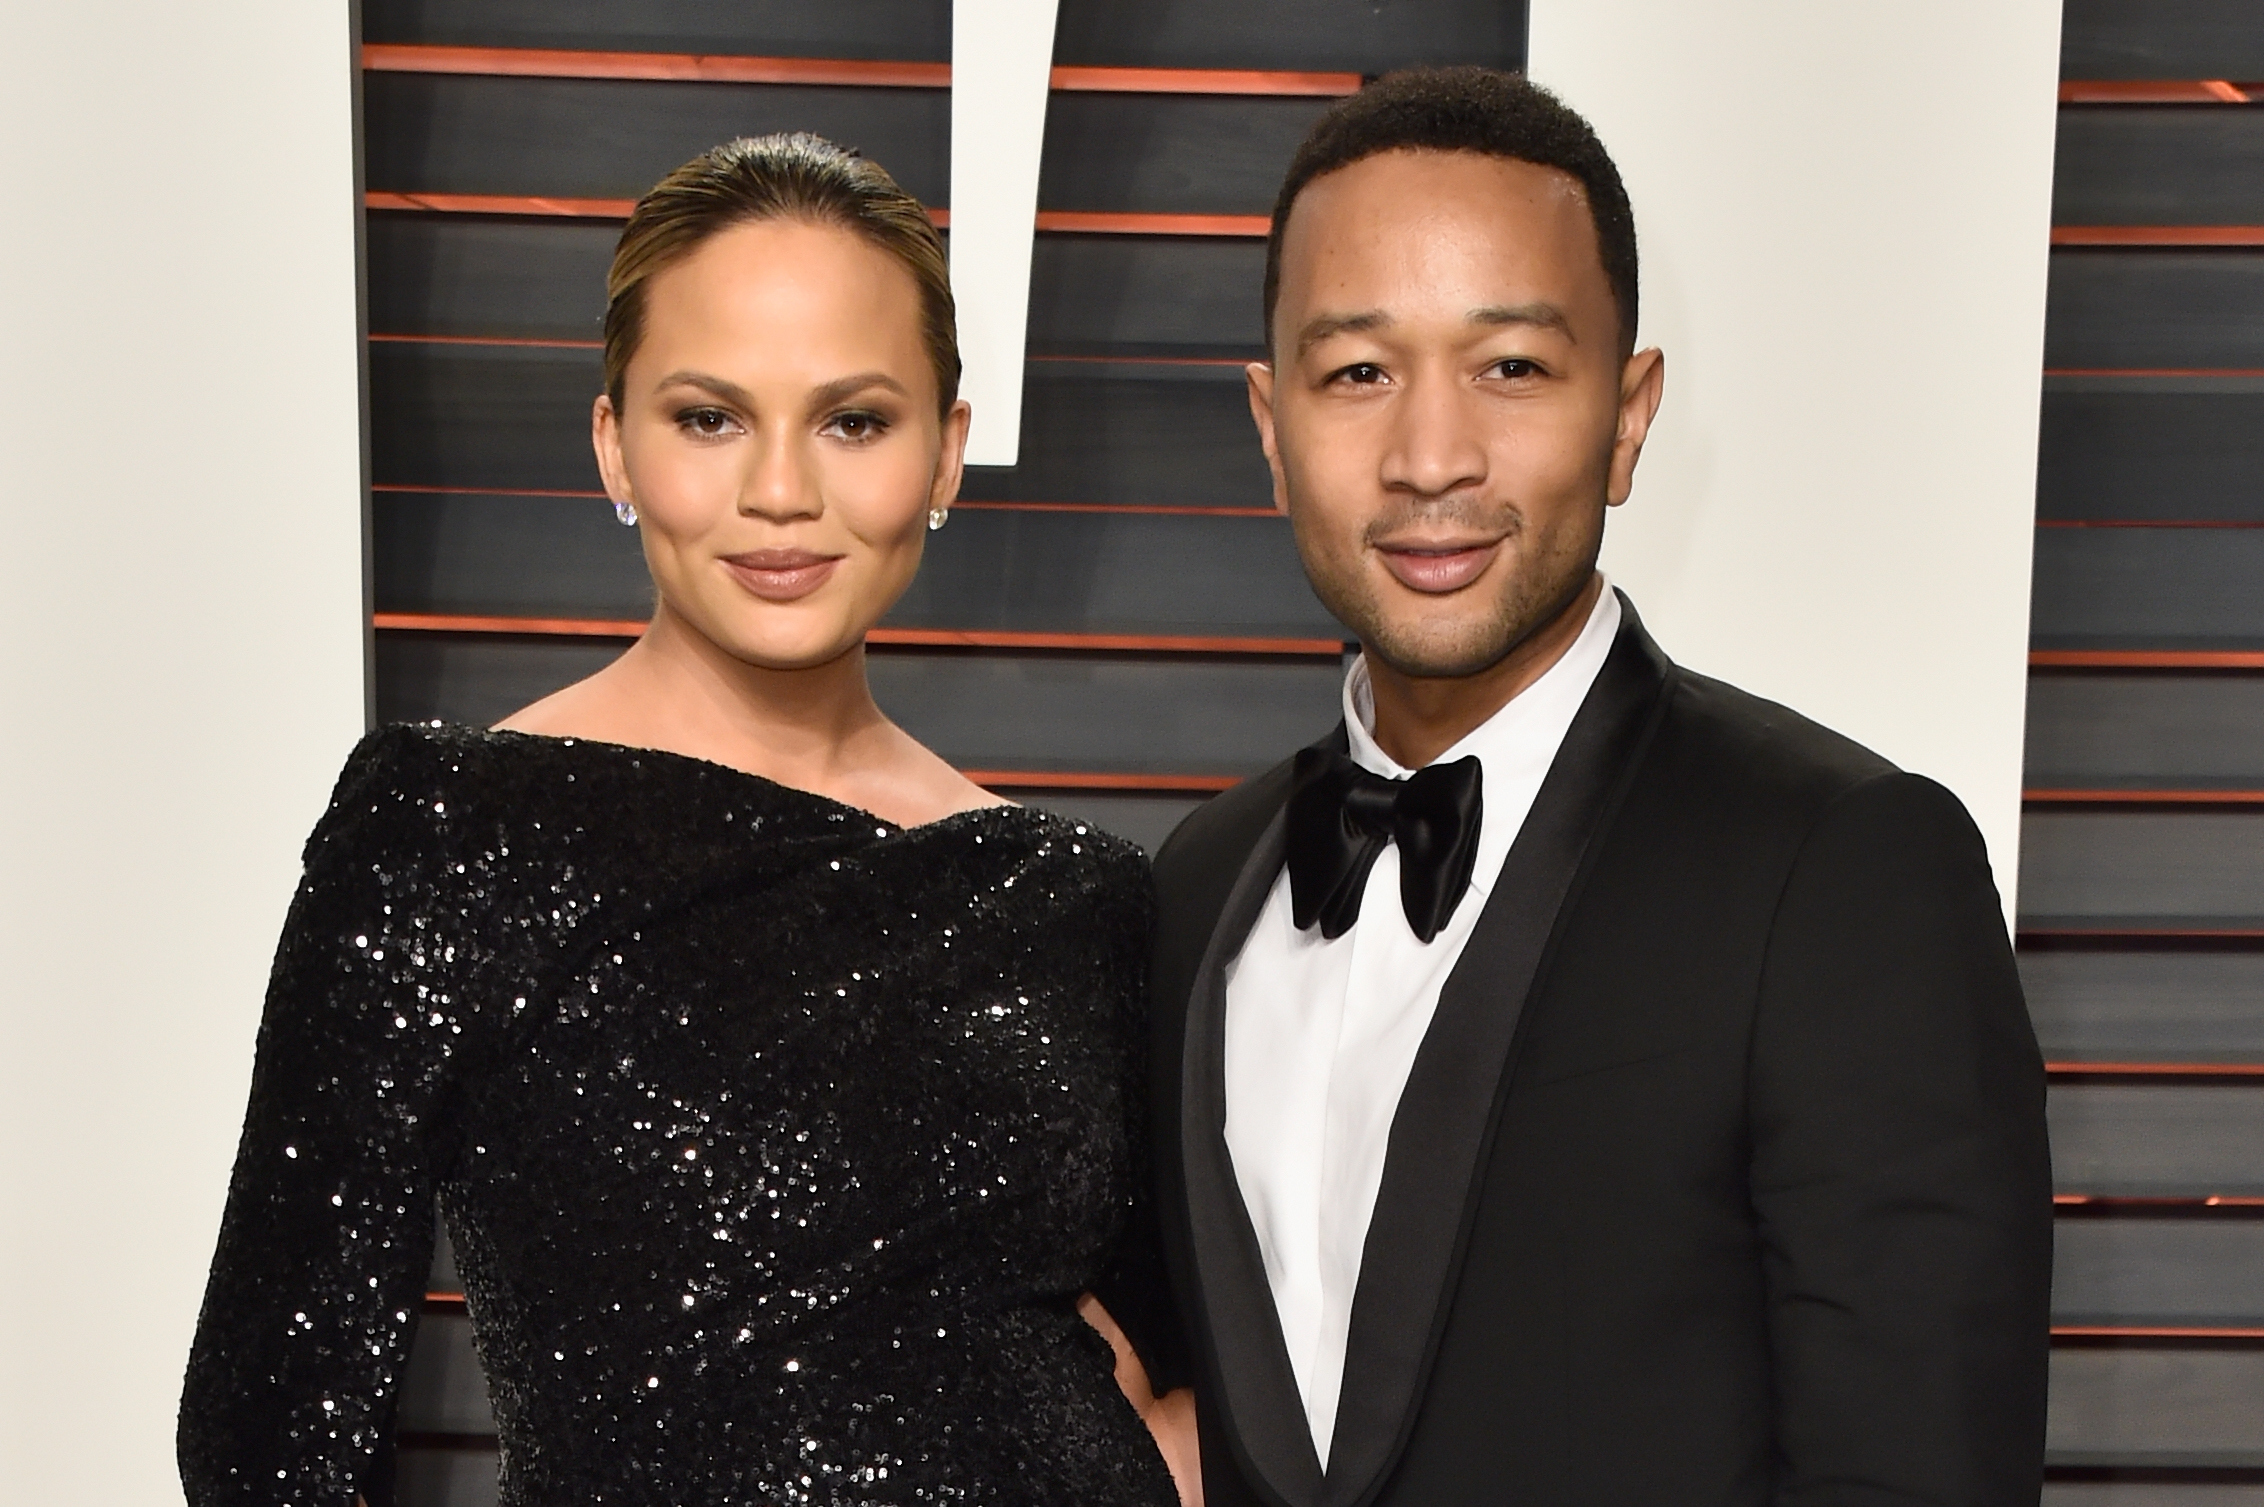 Chrissy Teigen attends the 2016 Vanity Fair Oscar Party Hosted By Graydon Carter at the Wallis Annenberg Center for the Performing Arts on February 28, 2016 in Beverly Hills, California.